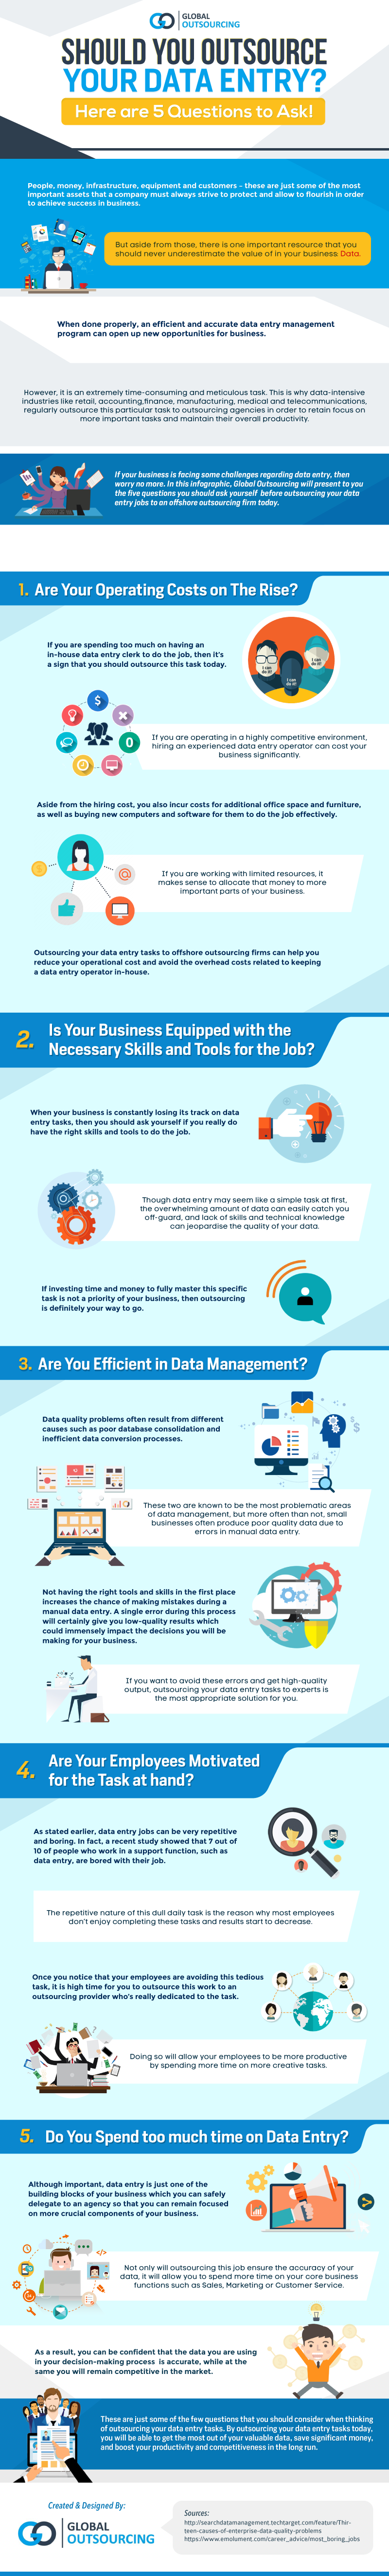 Data entry is one of the most tedious, time-consuming tasks, and is what many companies choose to delegate. But ask these 5 questions first! (Infographic)